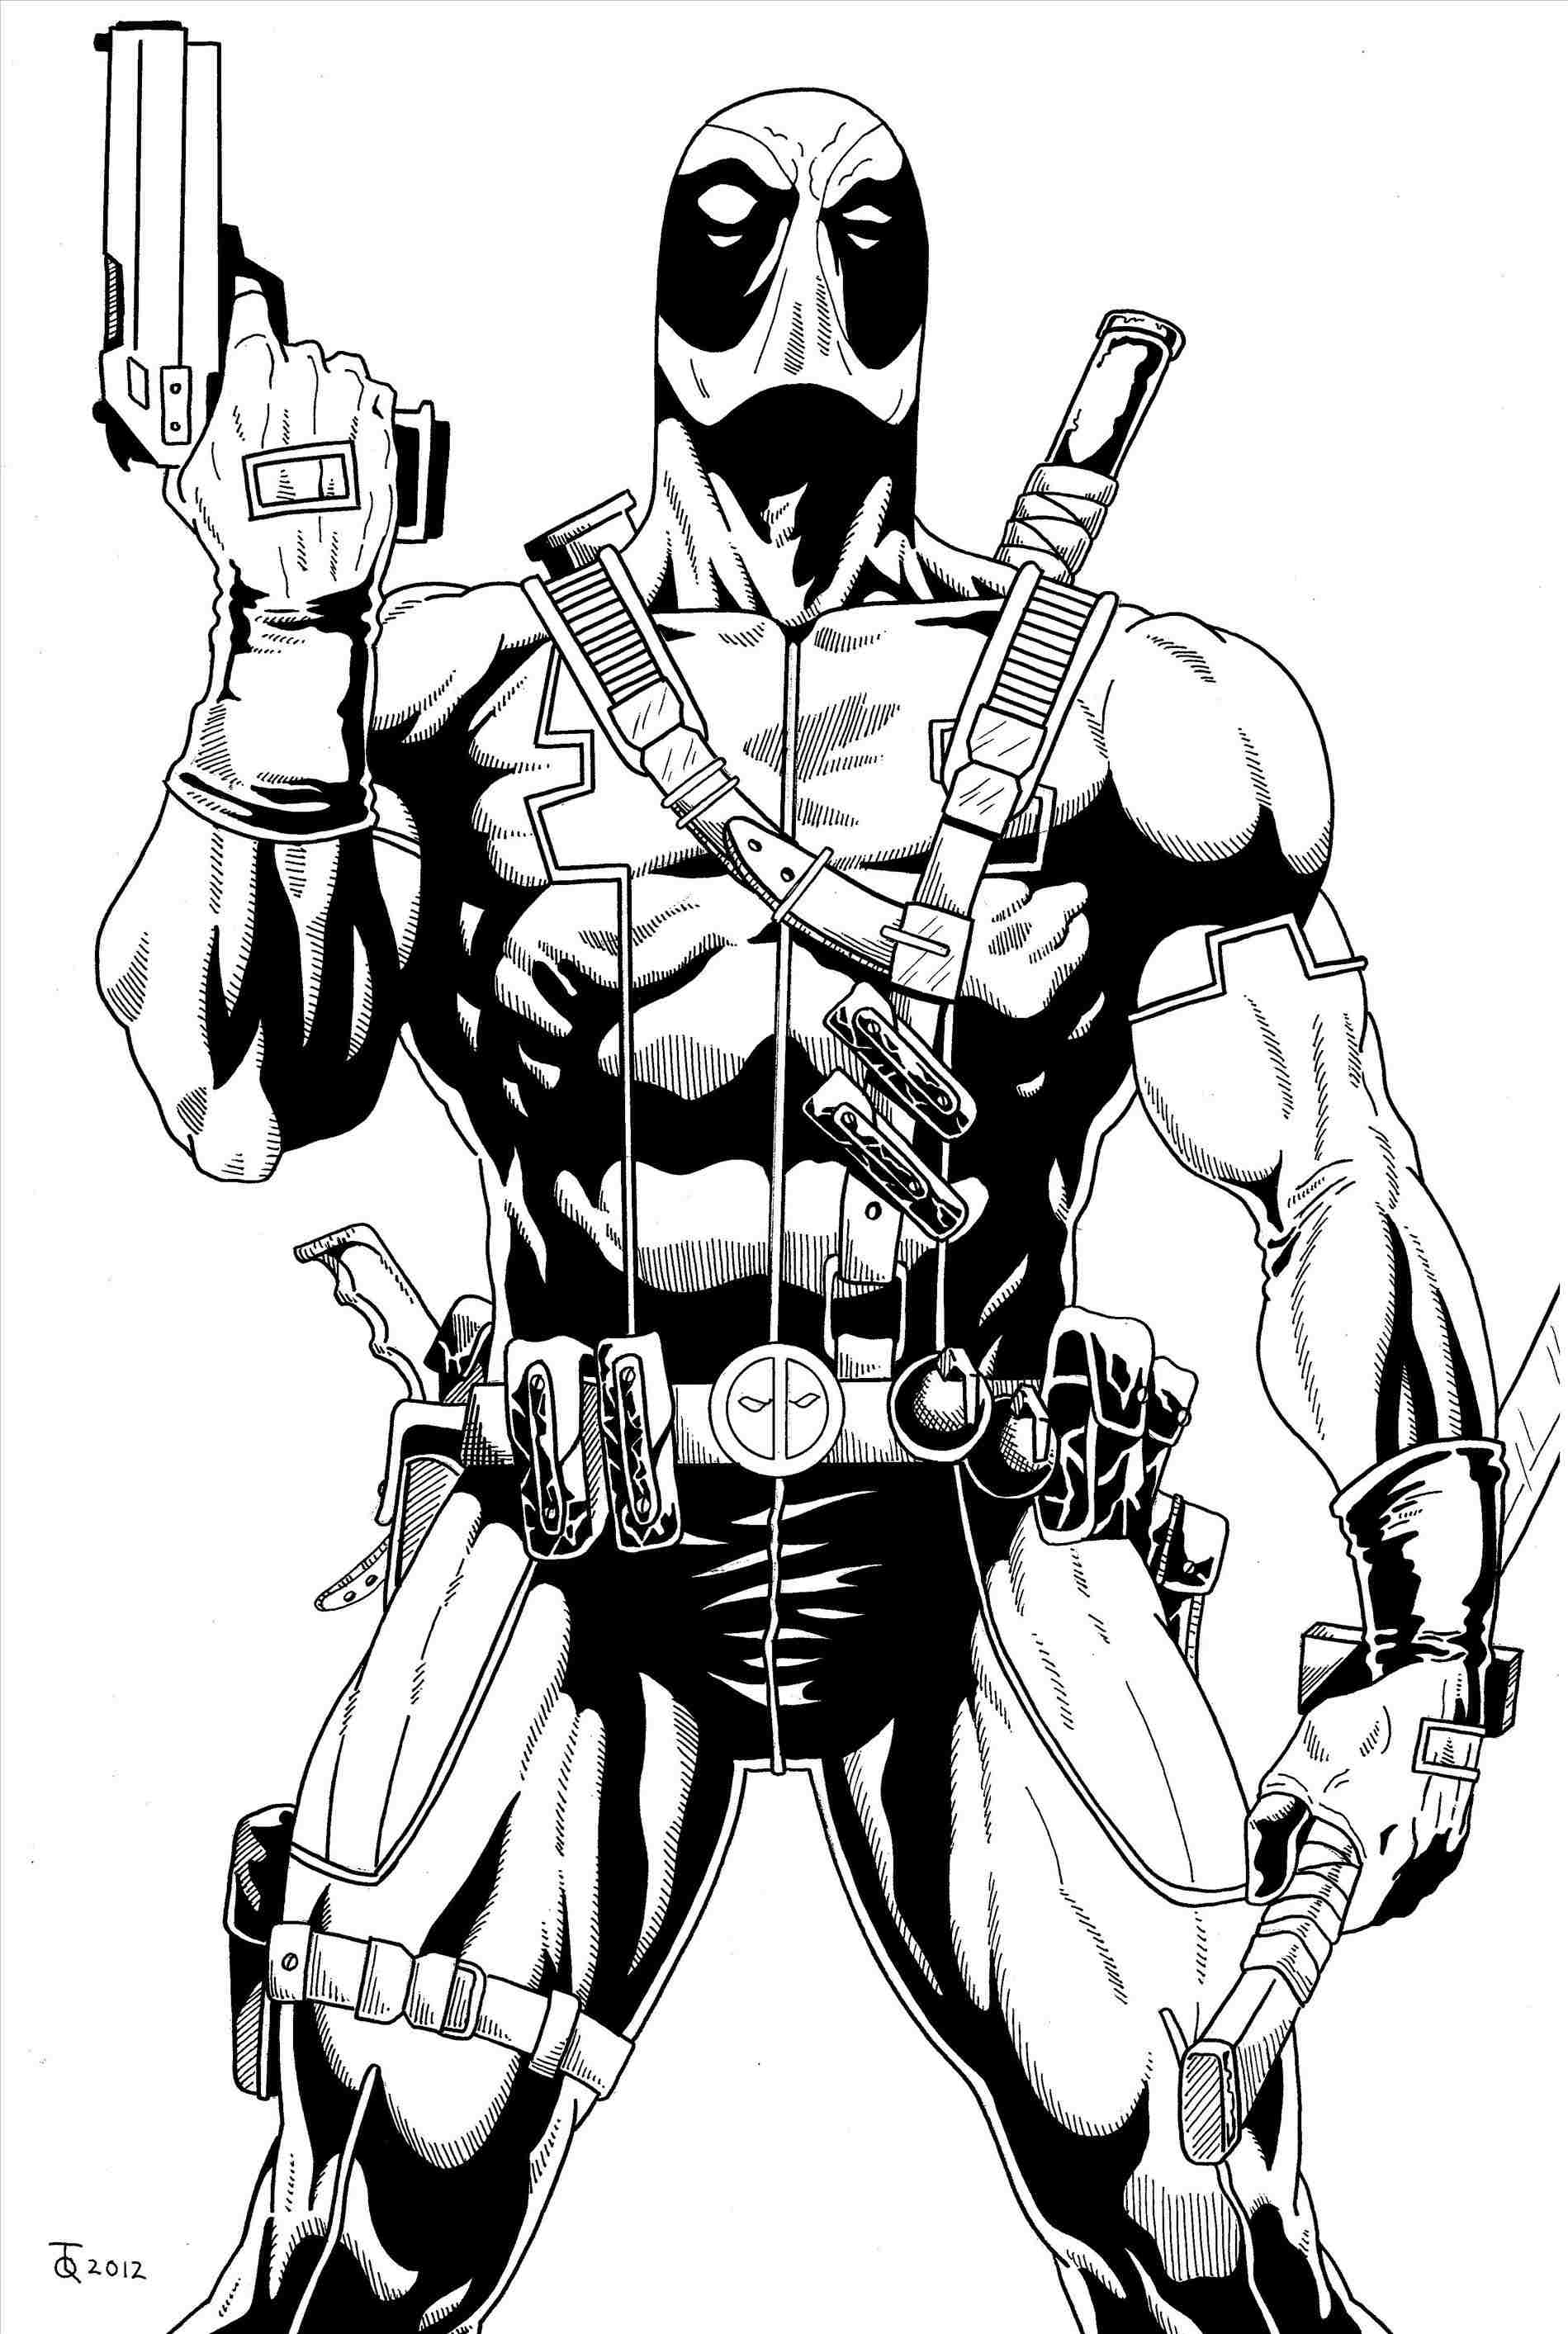 Deadpool Drawing In Pencil Full Body at GetDrawings | Free ...Deadpool Sketch